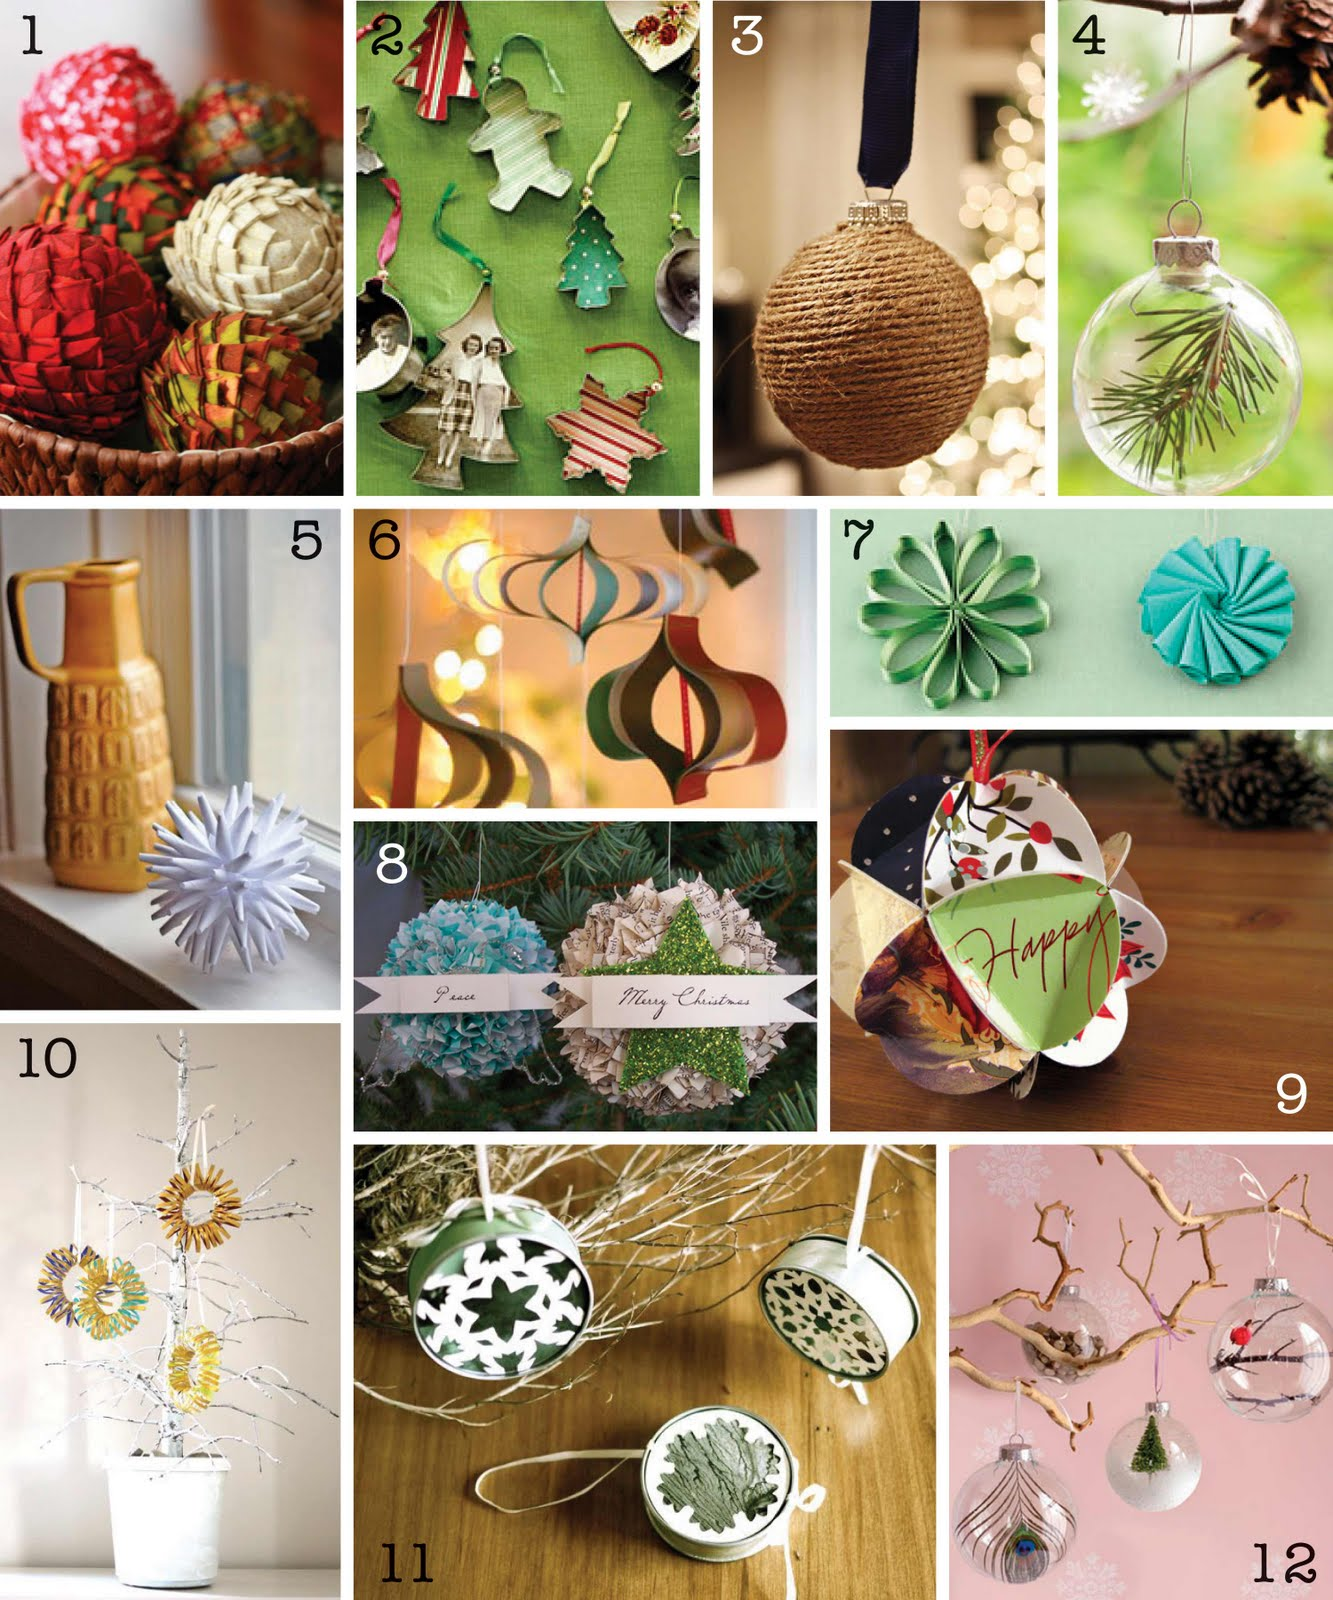 DIY Christmas Ornament Round Up The Creative Place